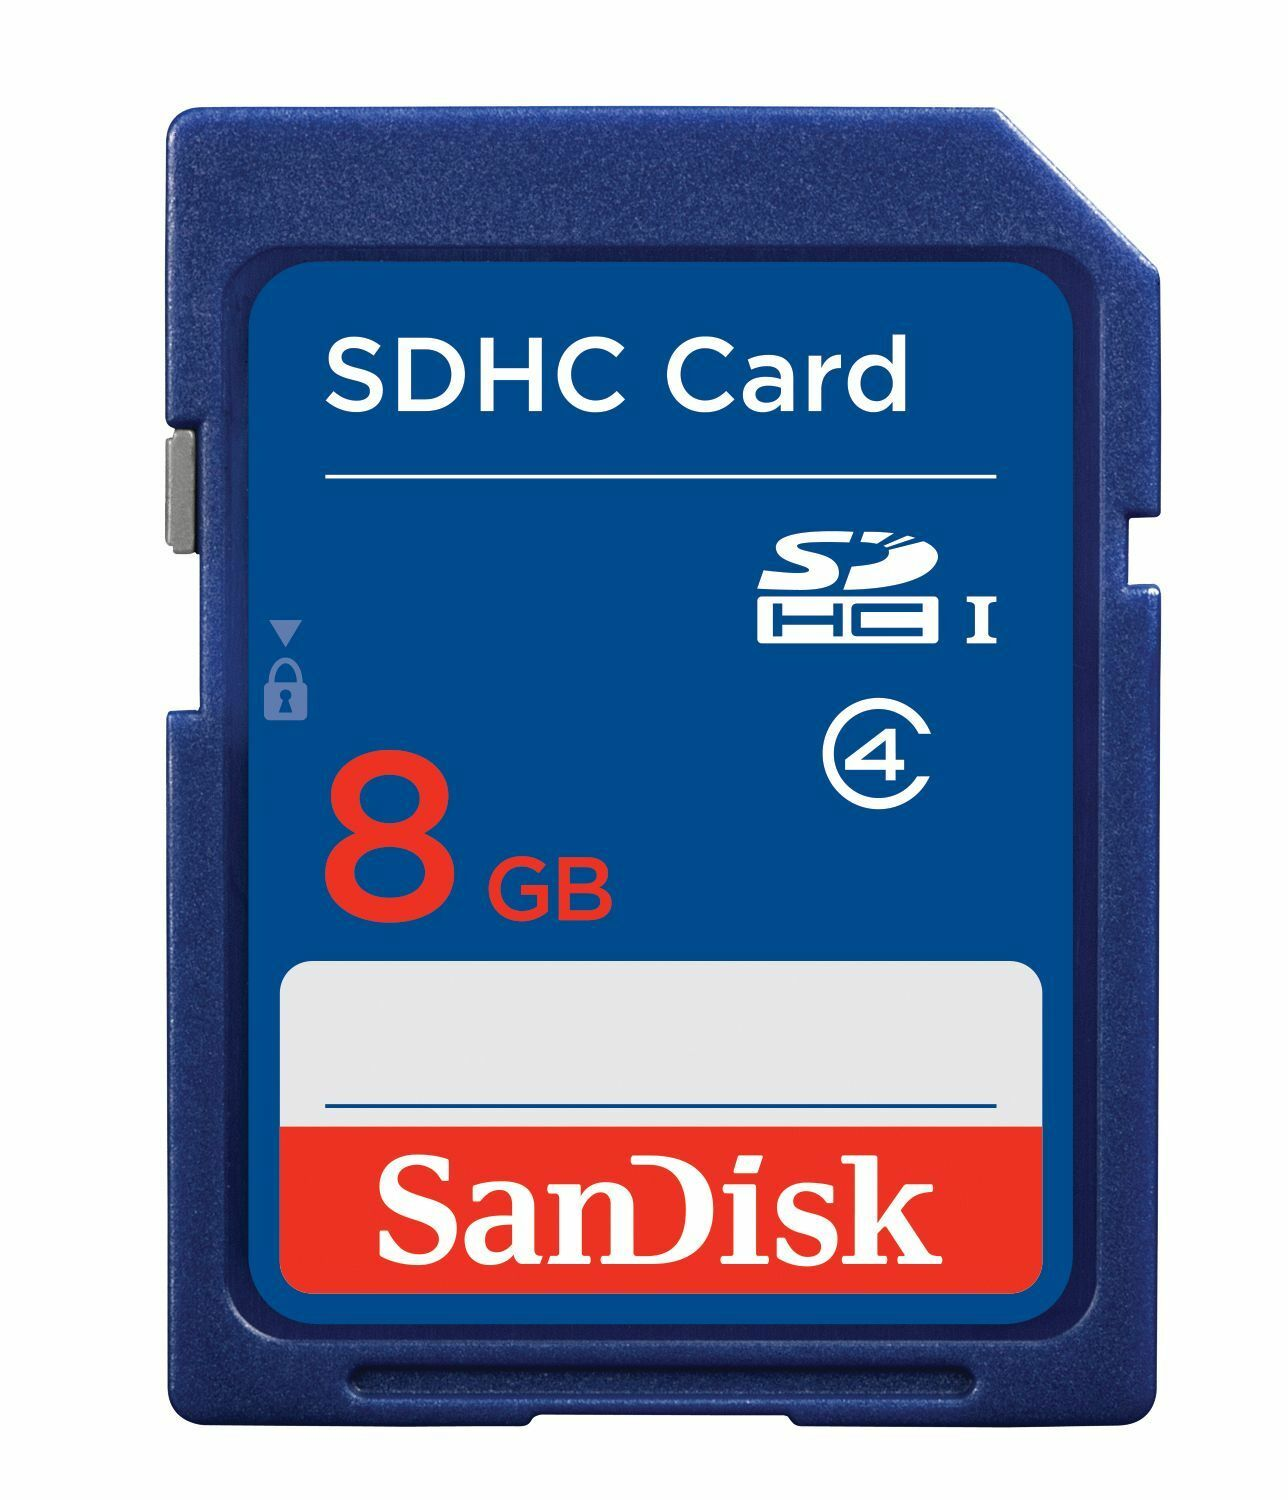 Купить SanDisk SD 8GB CLASS 4 Flash Memory Card SDHC for Camera